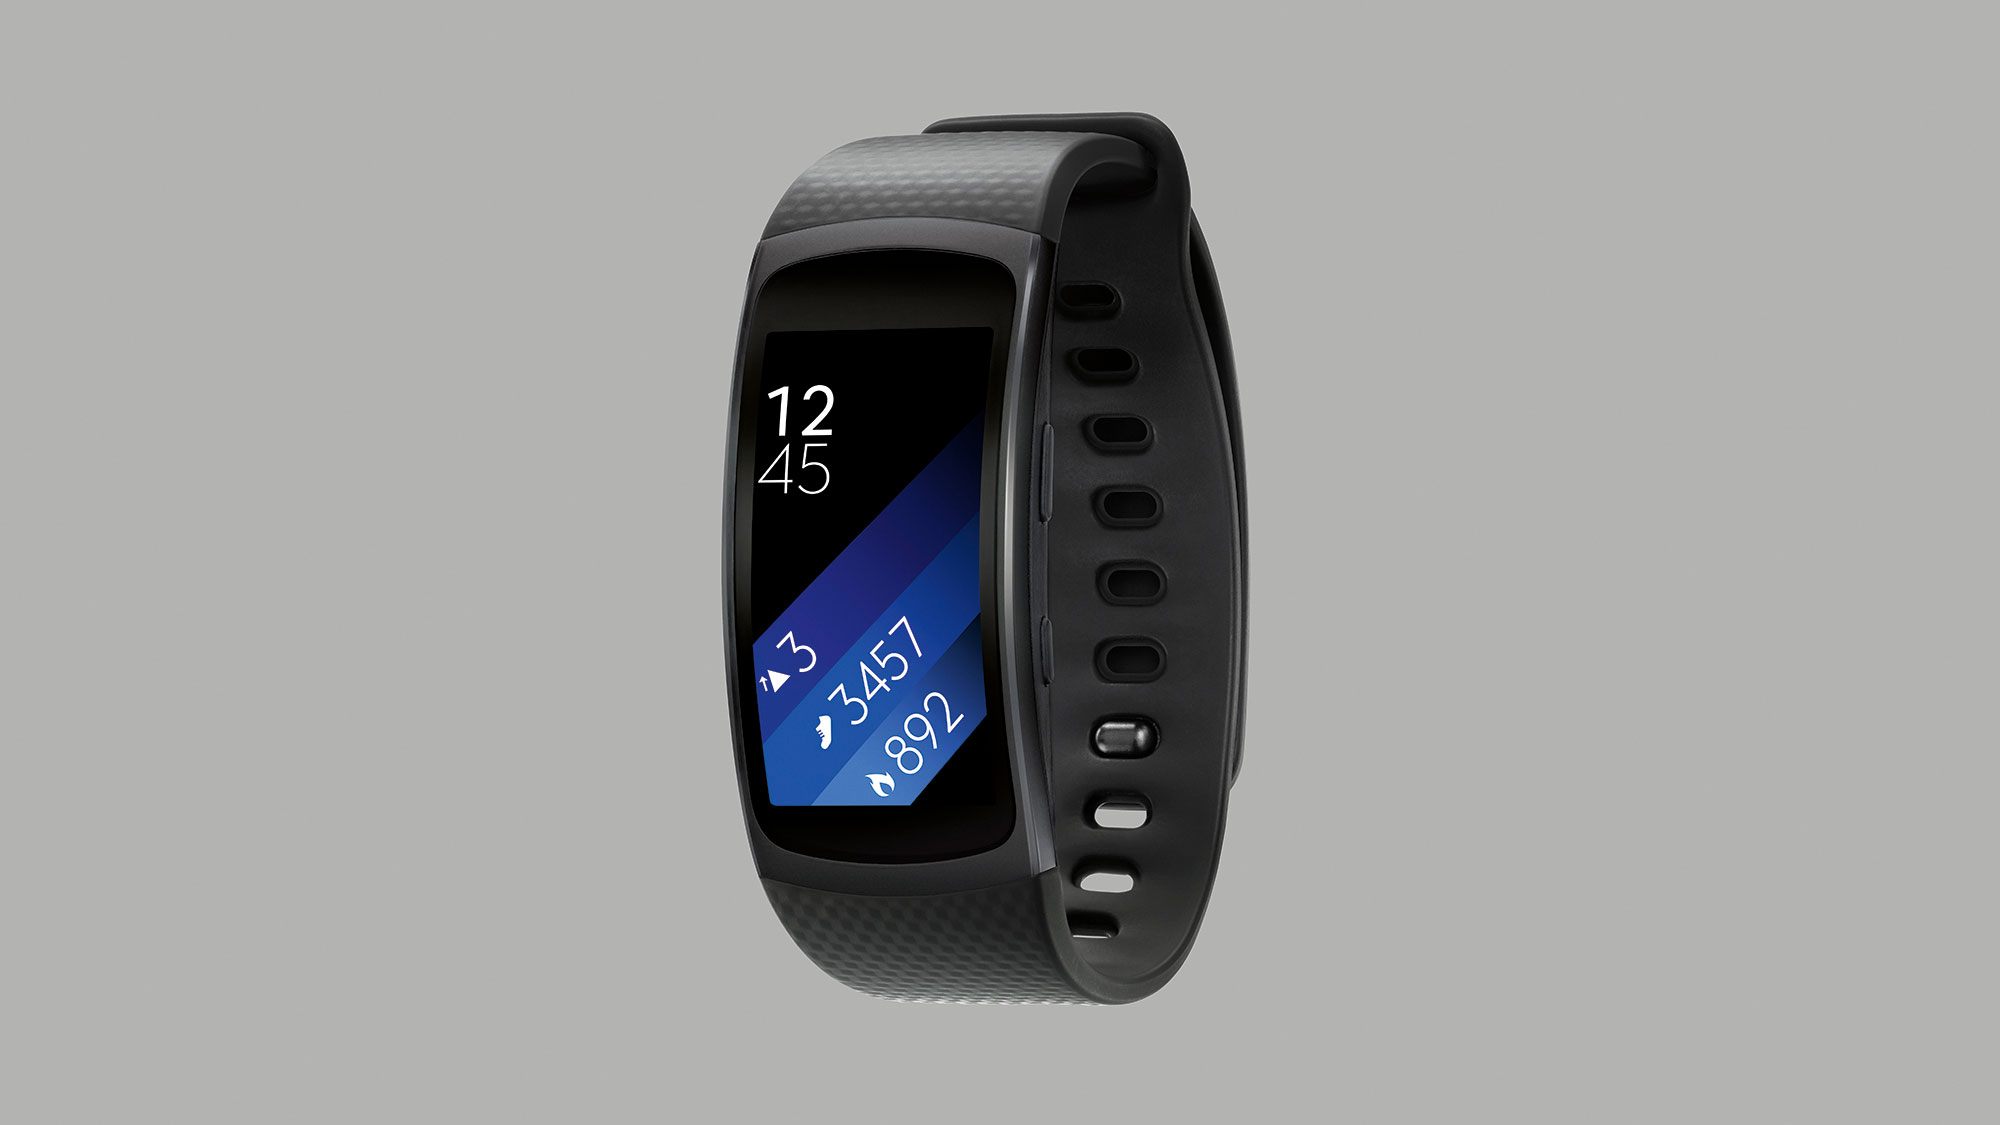 anteprima samsung gear fit 2 e gear fit icon x. Black Bedroom Furniture Sets. Home Design Ideas